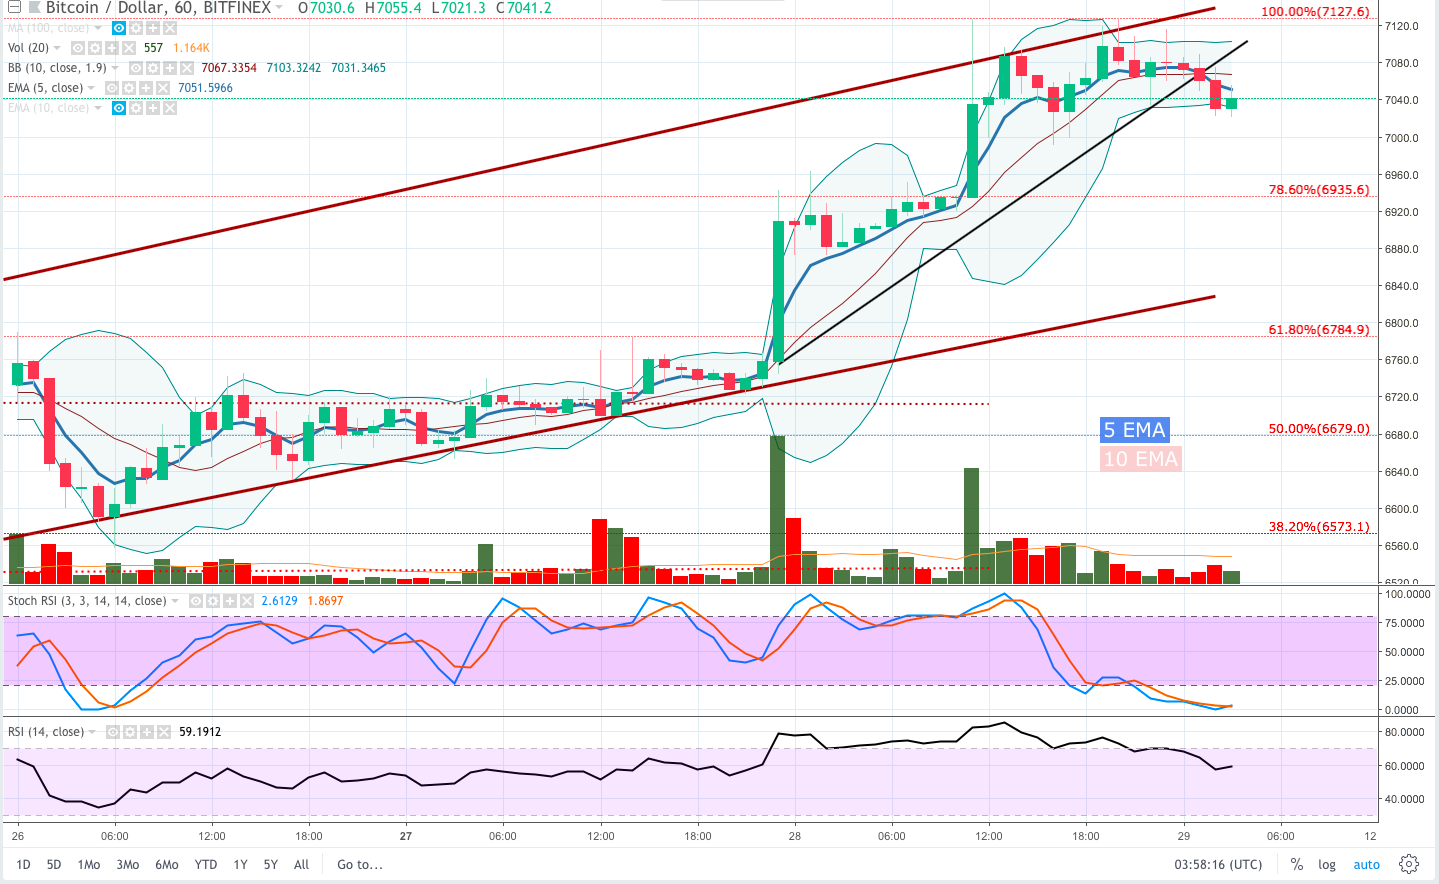 Bitcoin Price Analysis: Is This Yet Another Sucker's Rally?